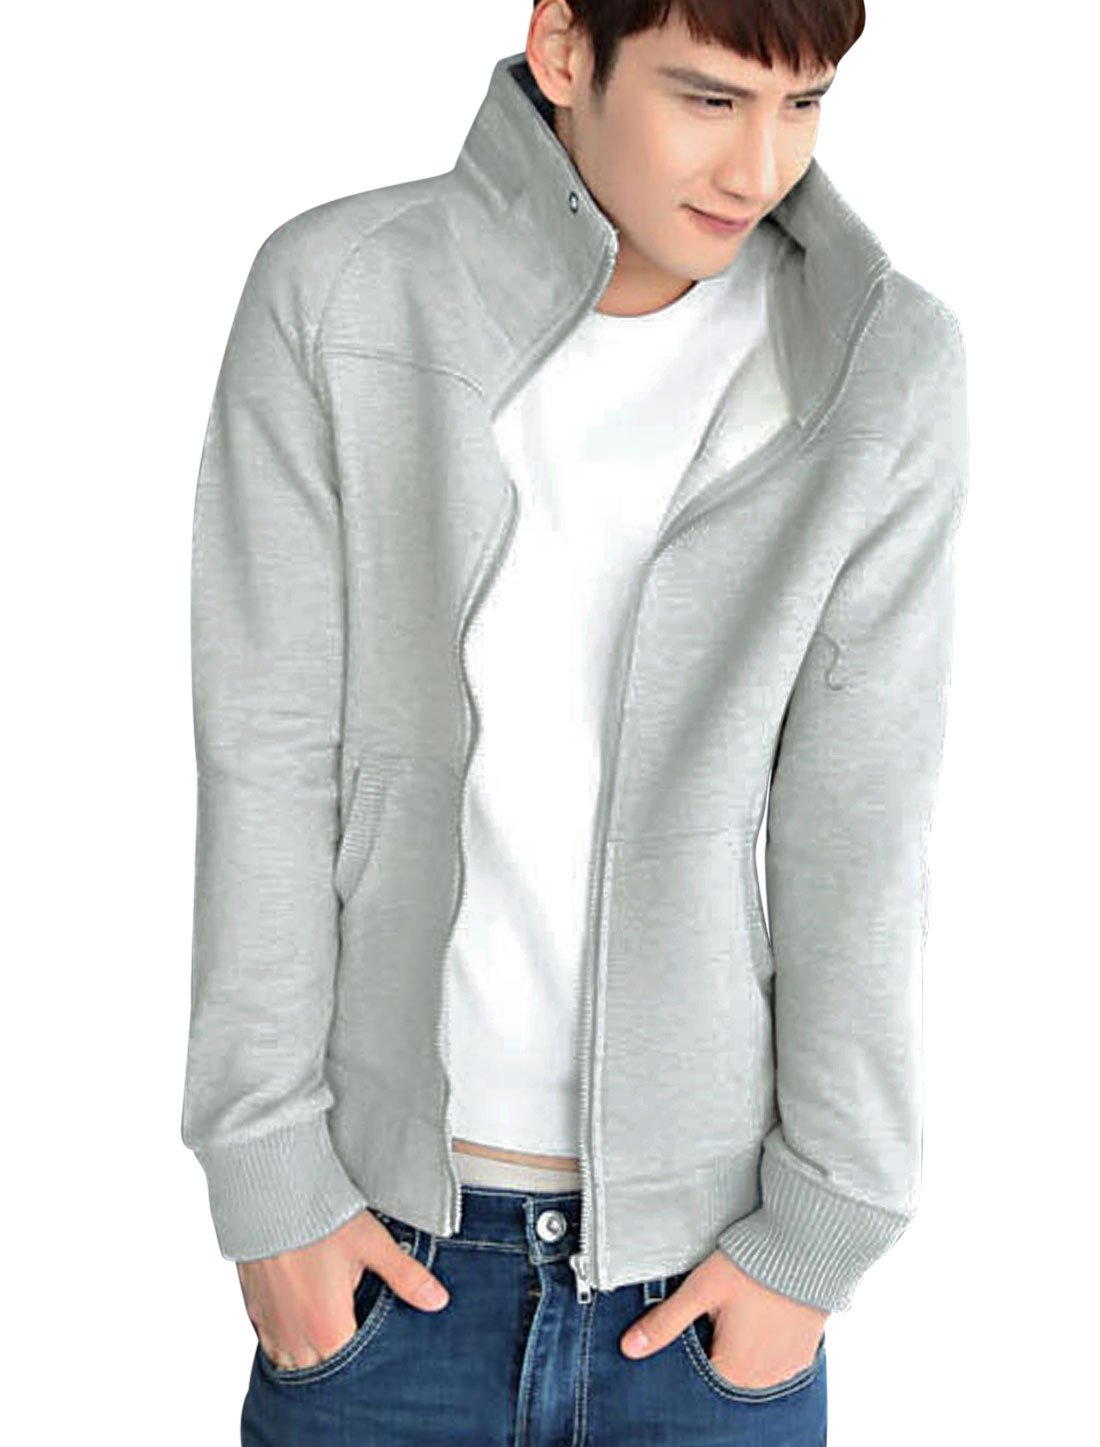 Men Raglan Sleeve Zip Up Fashionable Casual Sweatshirt Light Gray M